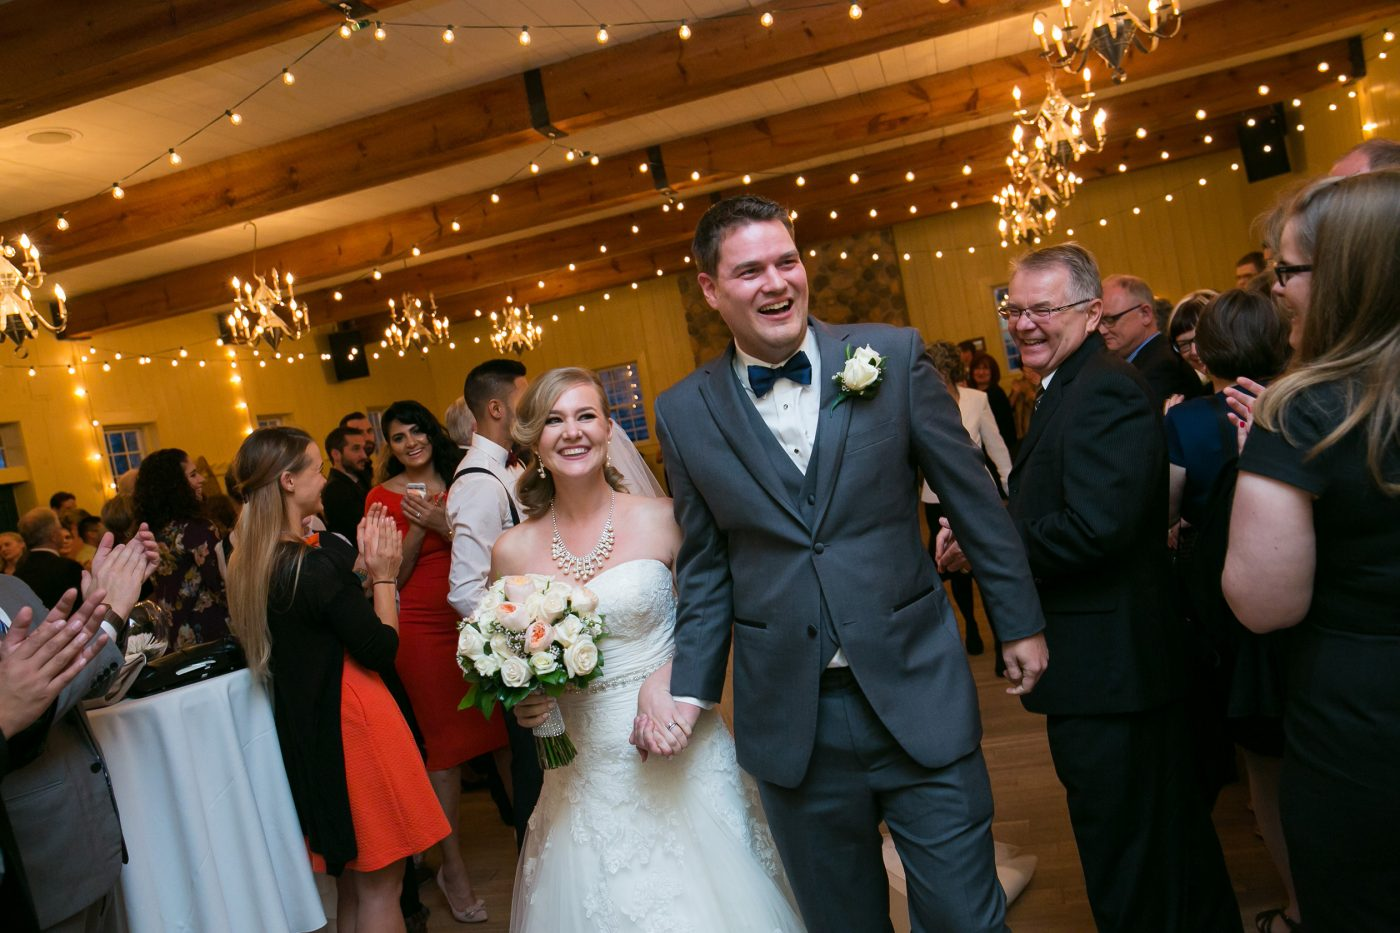 Big smiles as the couple walks out